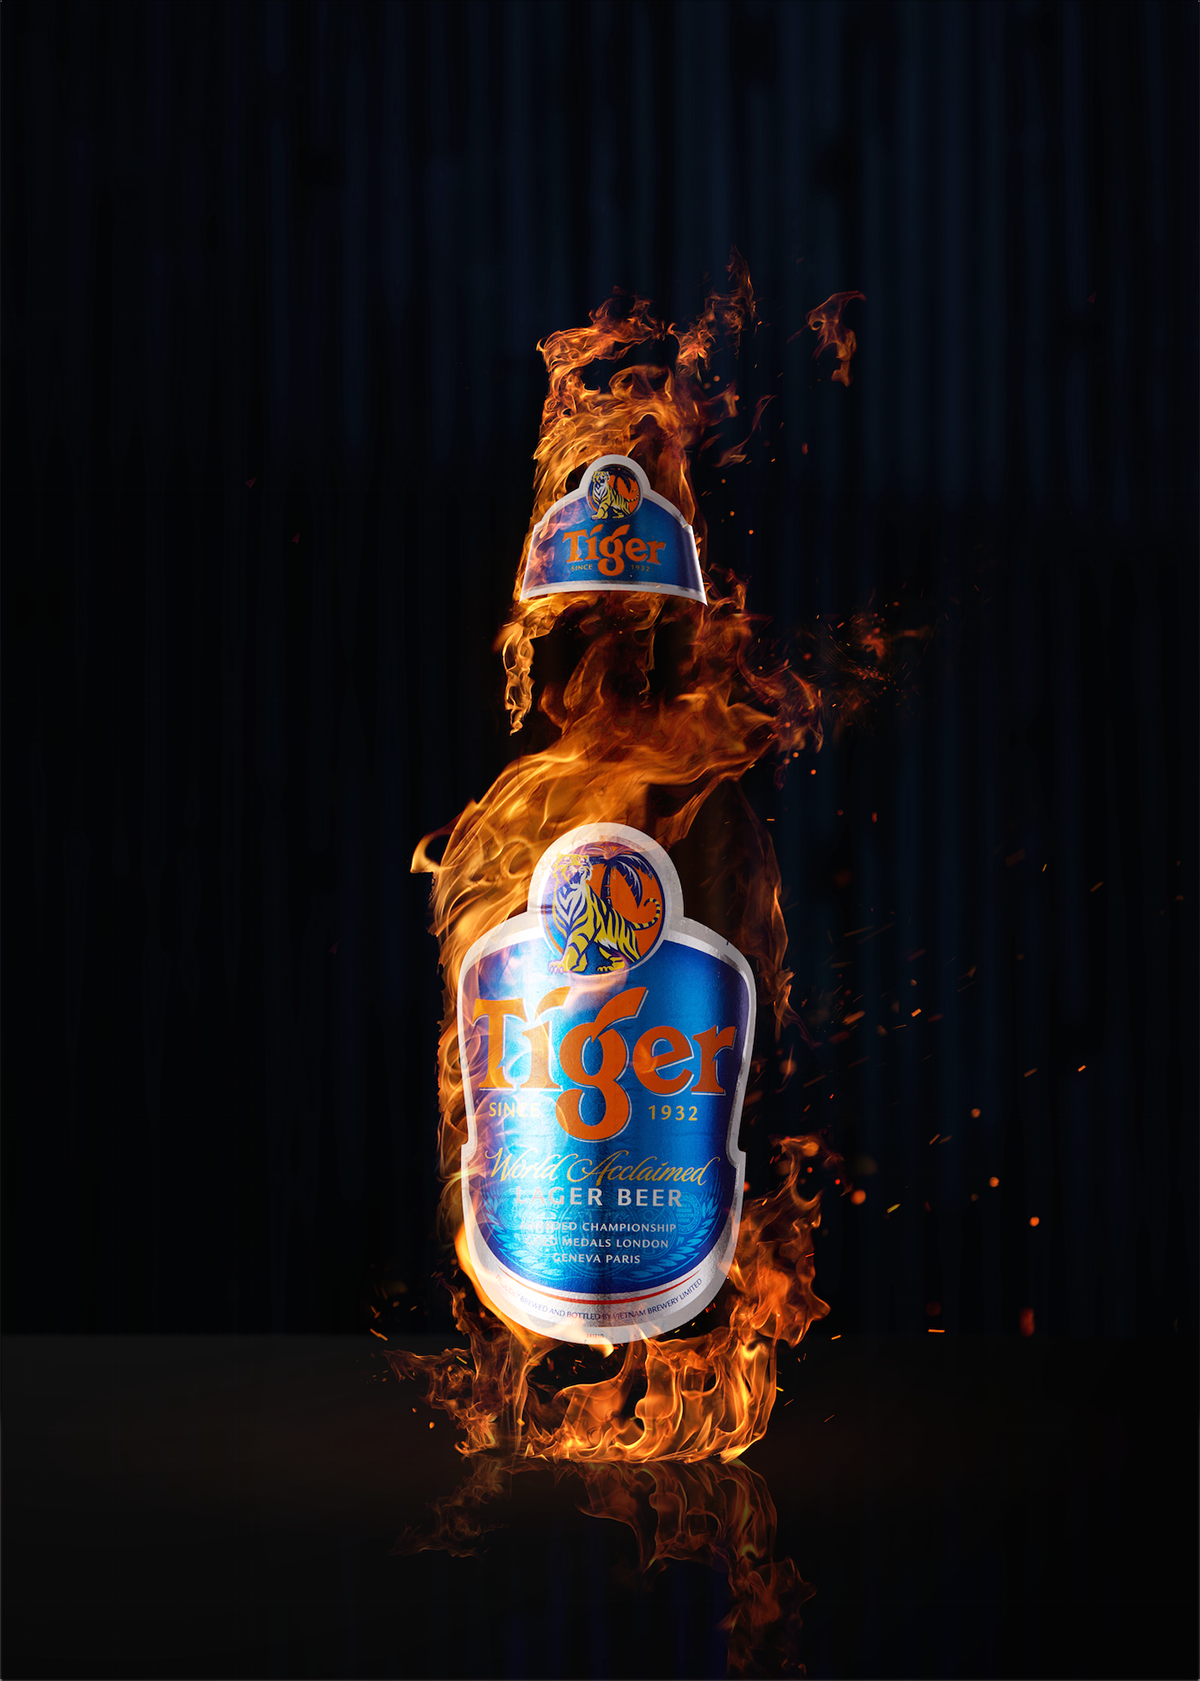 tiger beer case study Celebrating the asian origins of its brand, tiger beer has repurposed a canal street, new york discount store to display an array of art, fashion, technology and.